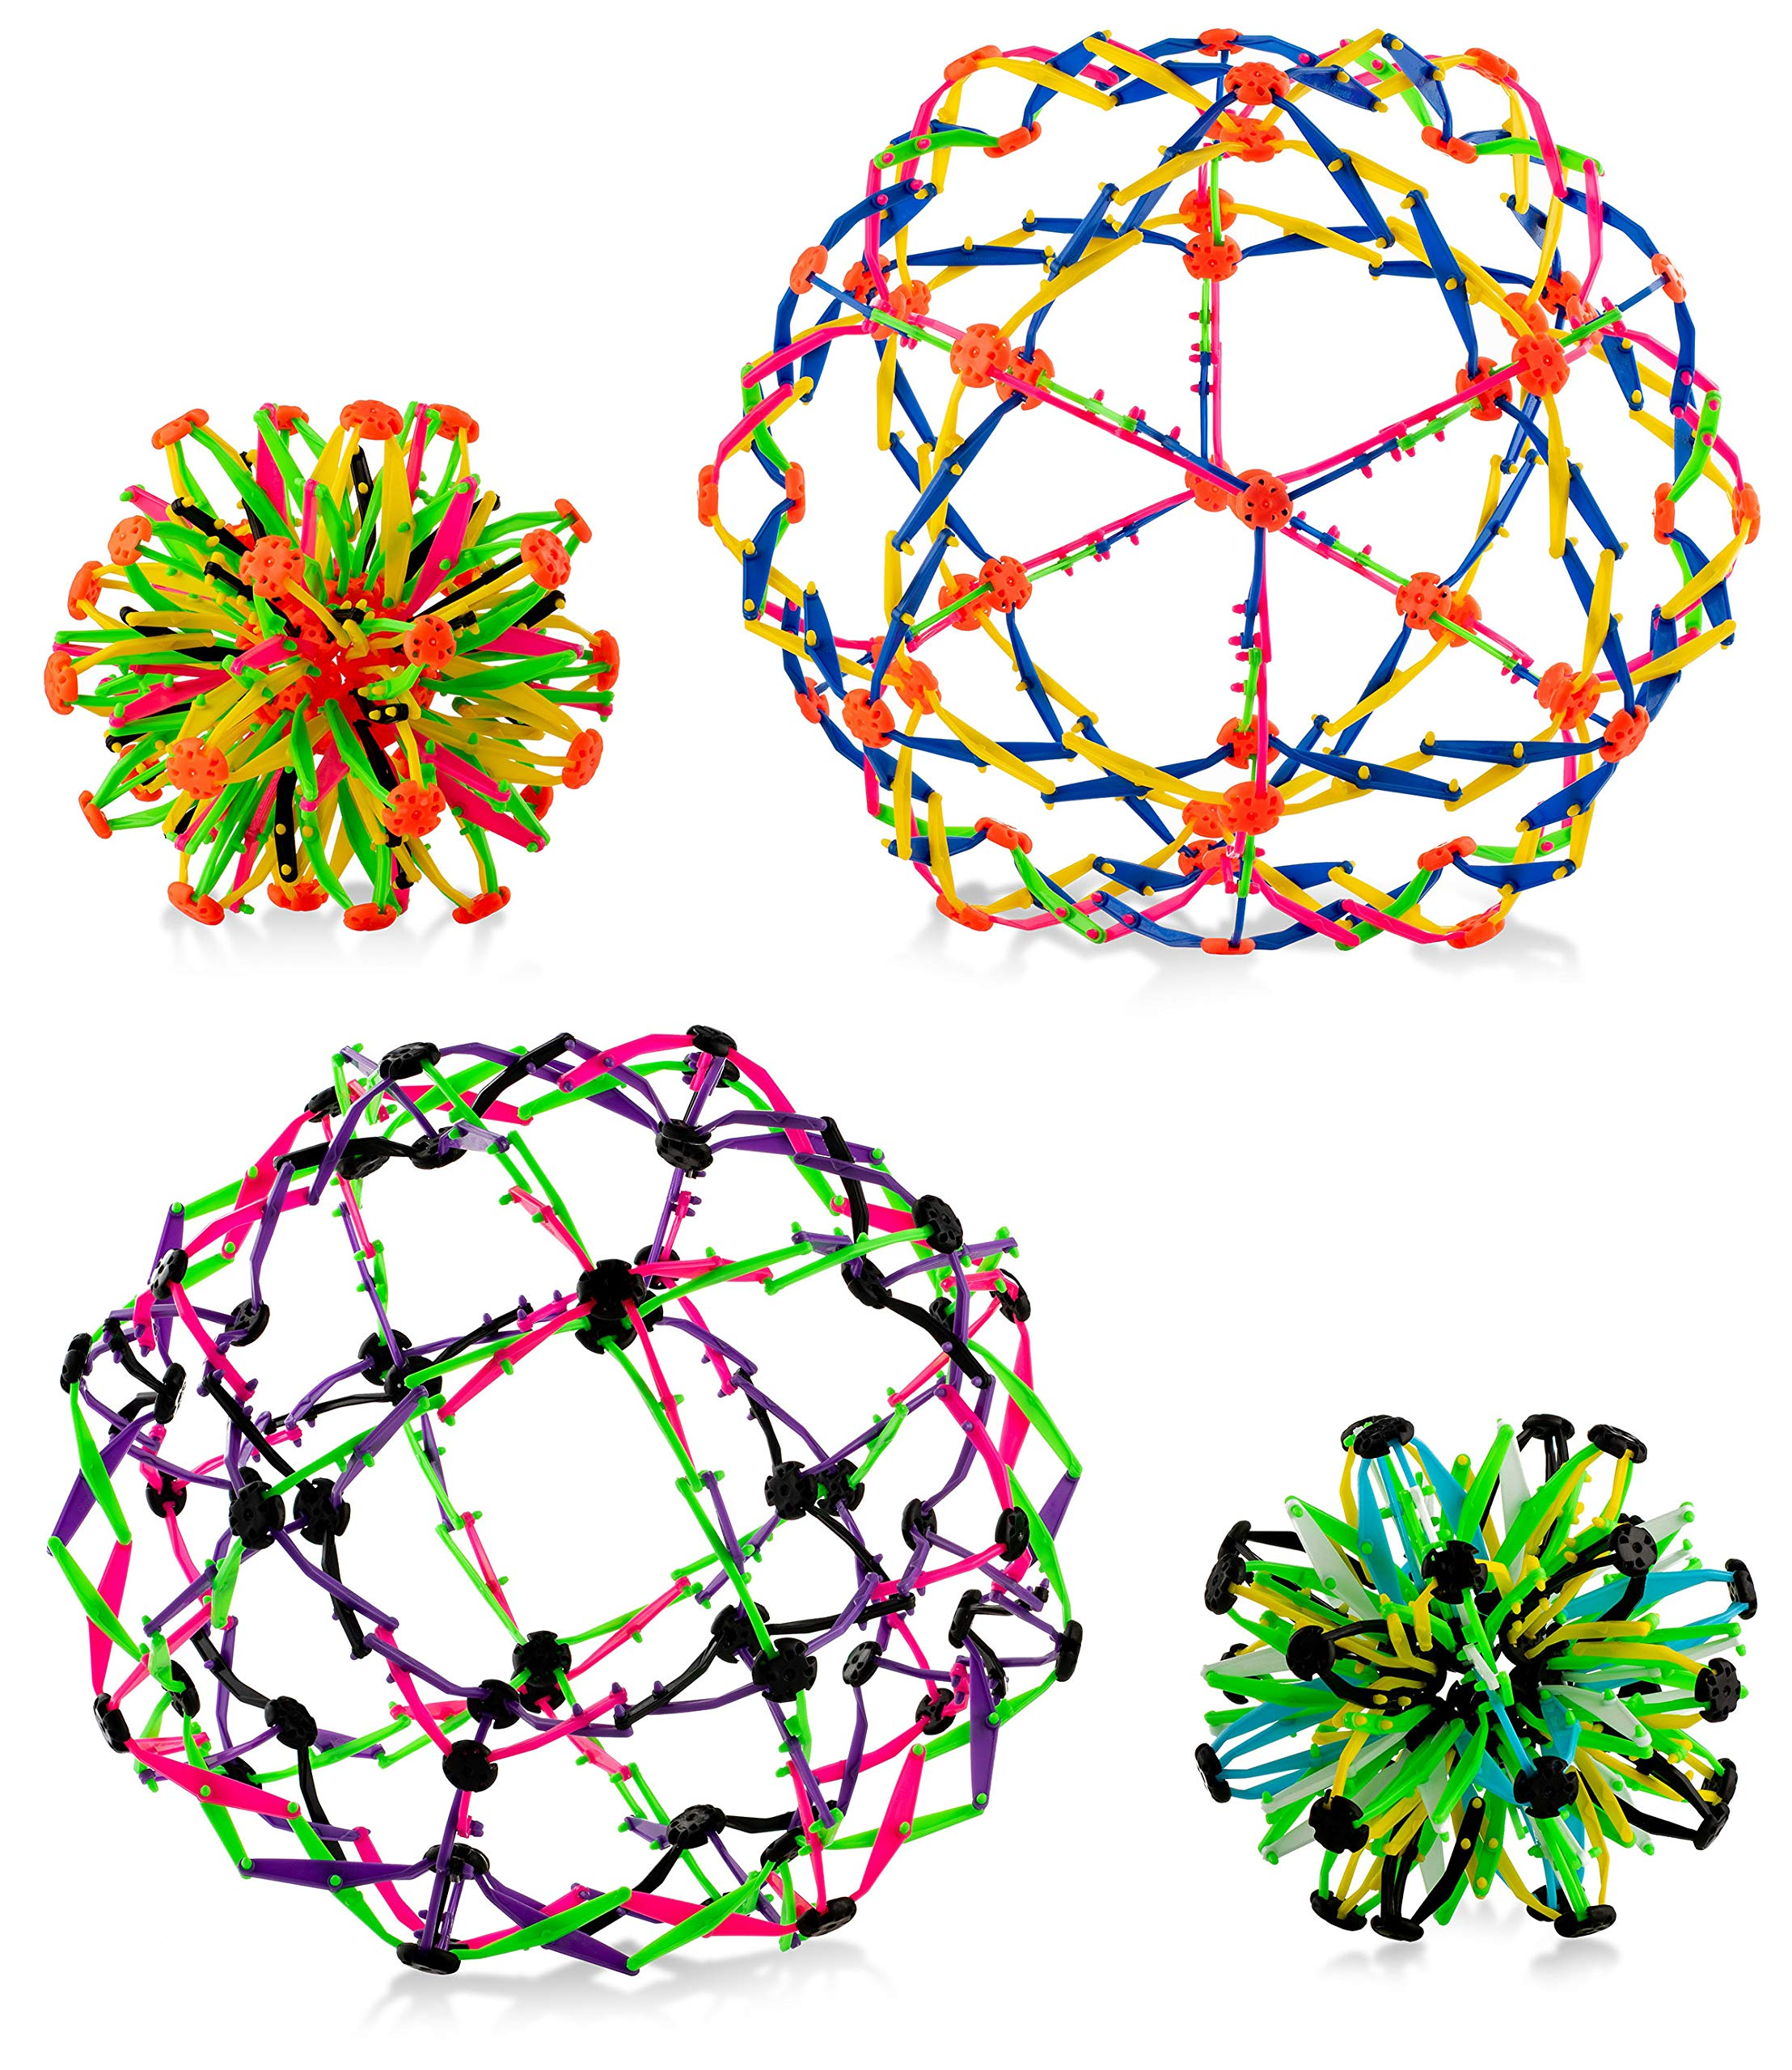 4E's Novelty Pack of 4 Expandable Balls, Hand Catch Expanding Breathing Sphere Flower Ball for Kids Boys and Girls, Great Stress Relief and Anxiety Toy, Helpful Gift for ADHD Sensory Issues